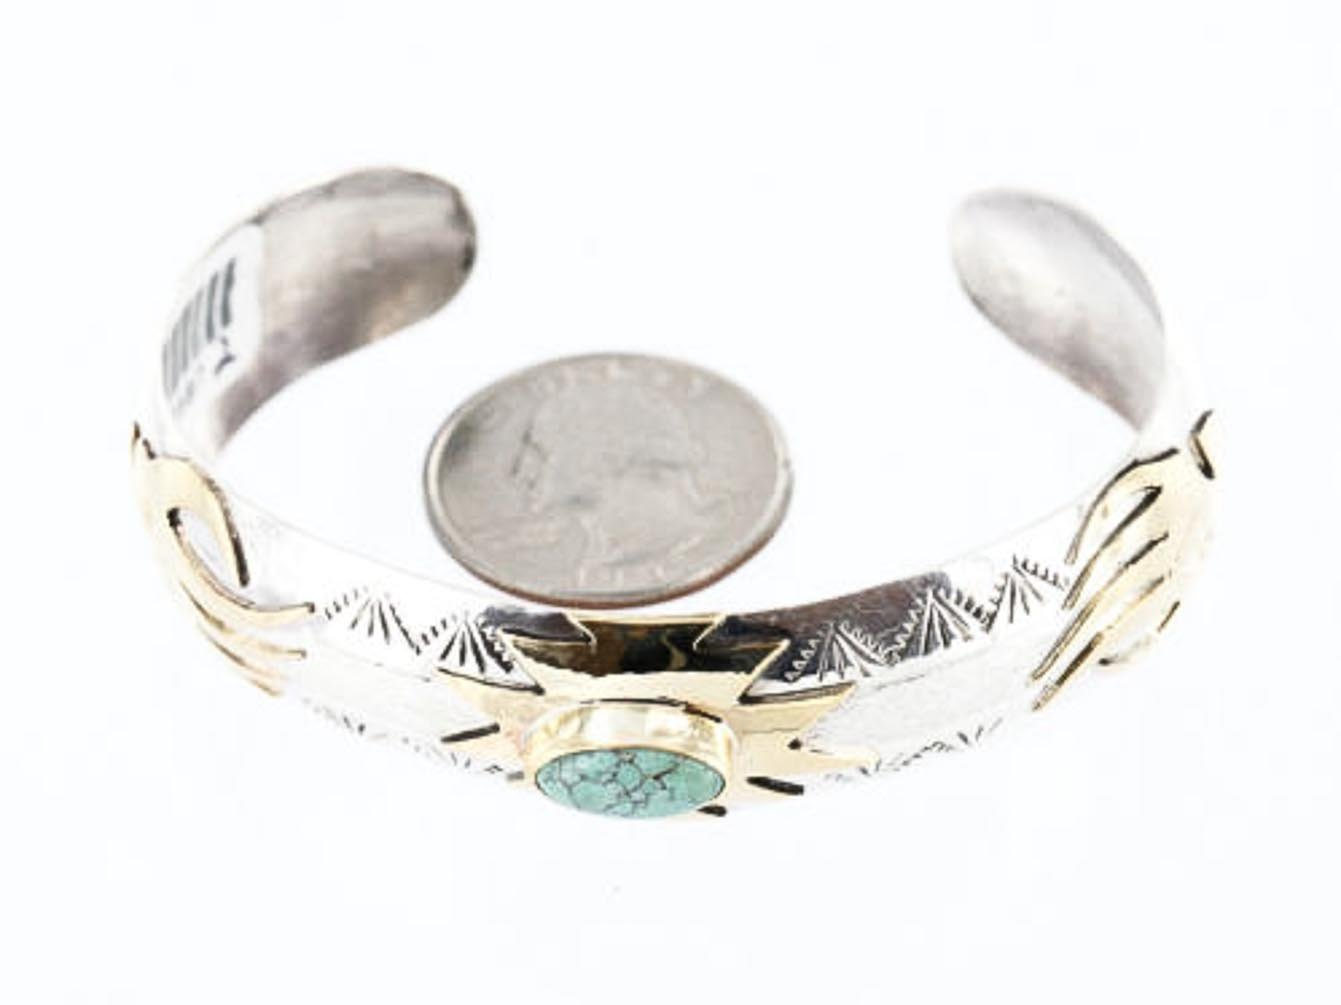 $480 Retail Tag 12kt Gold Filled and Silver Handmade Horse Authentic Genevieve Jones Navajo Turquoise Native American Bracelet by Native-Bay (Image #3)